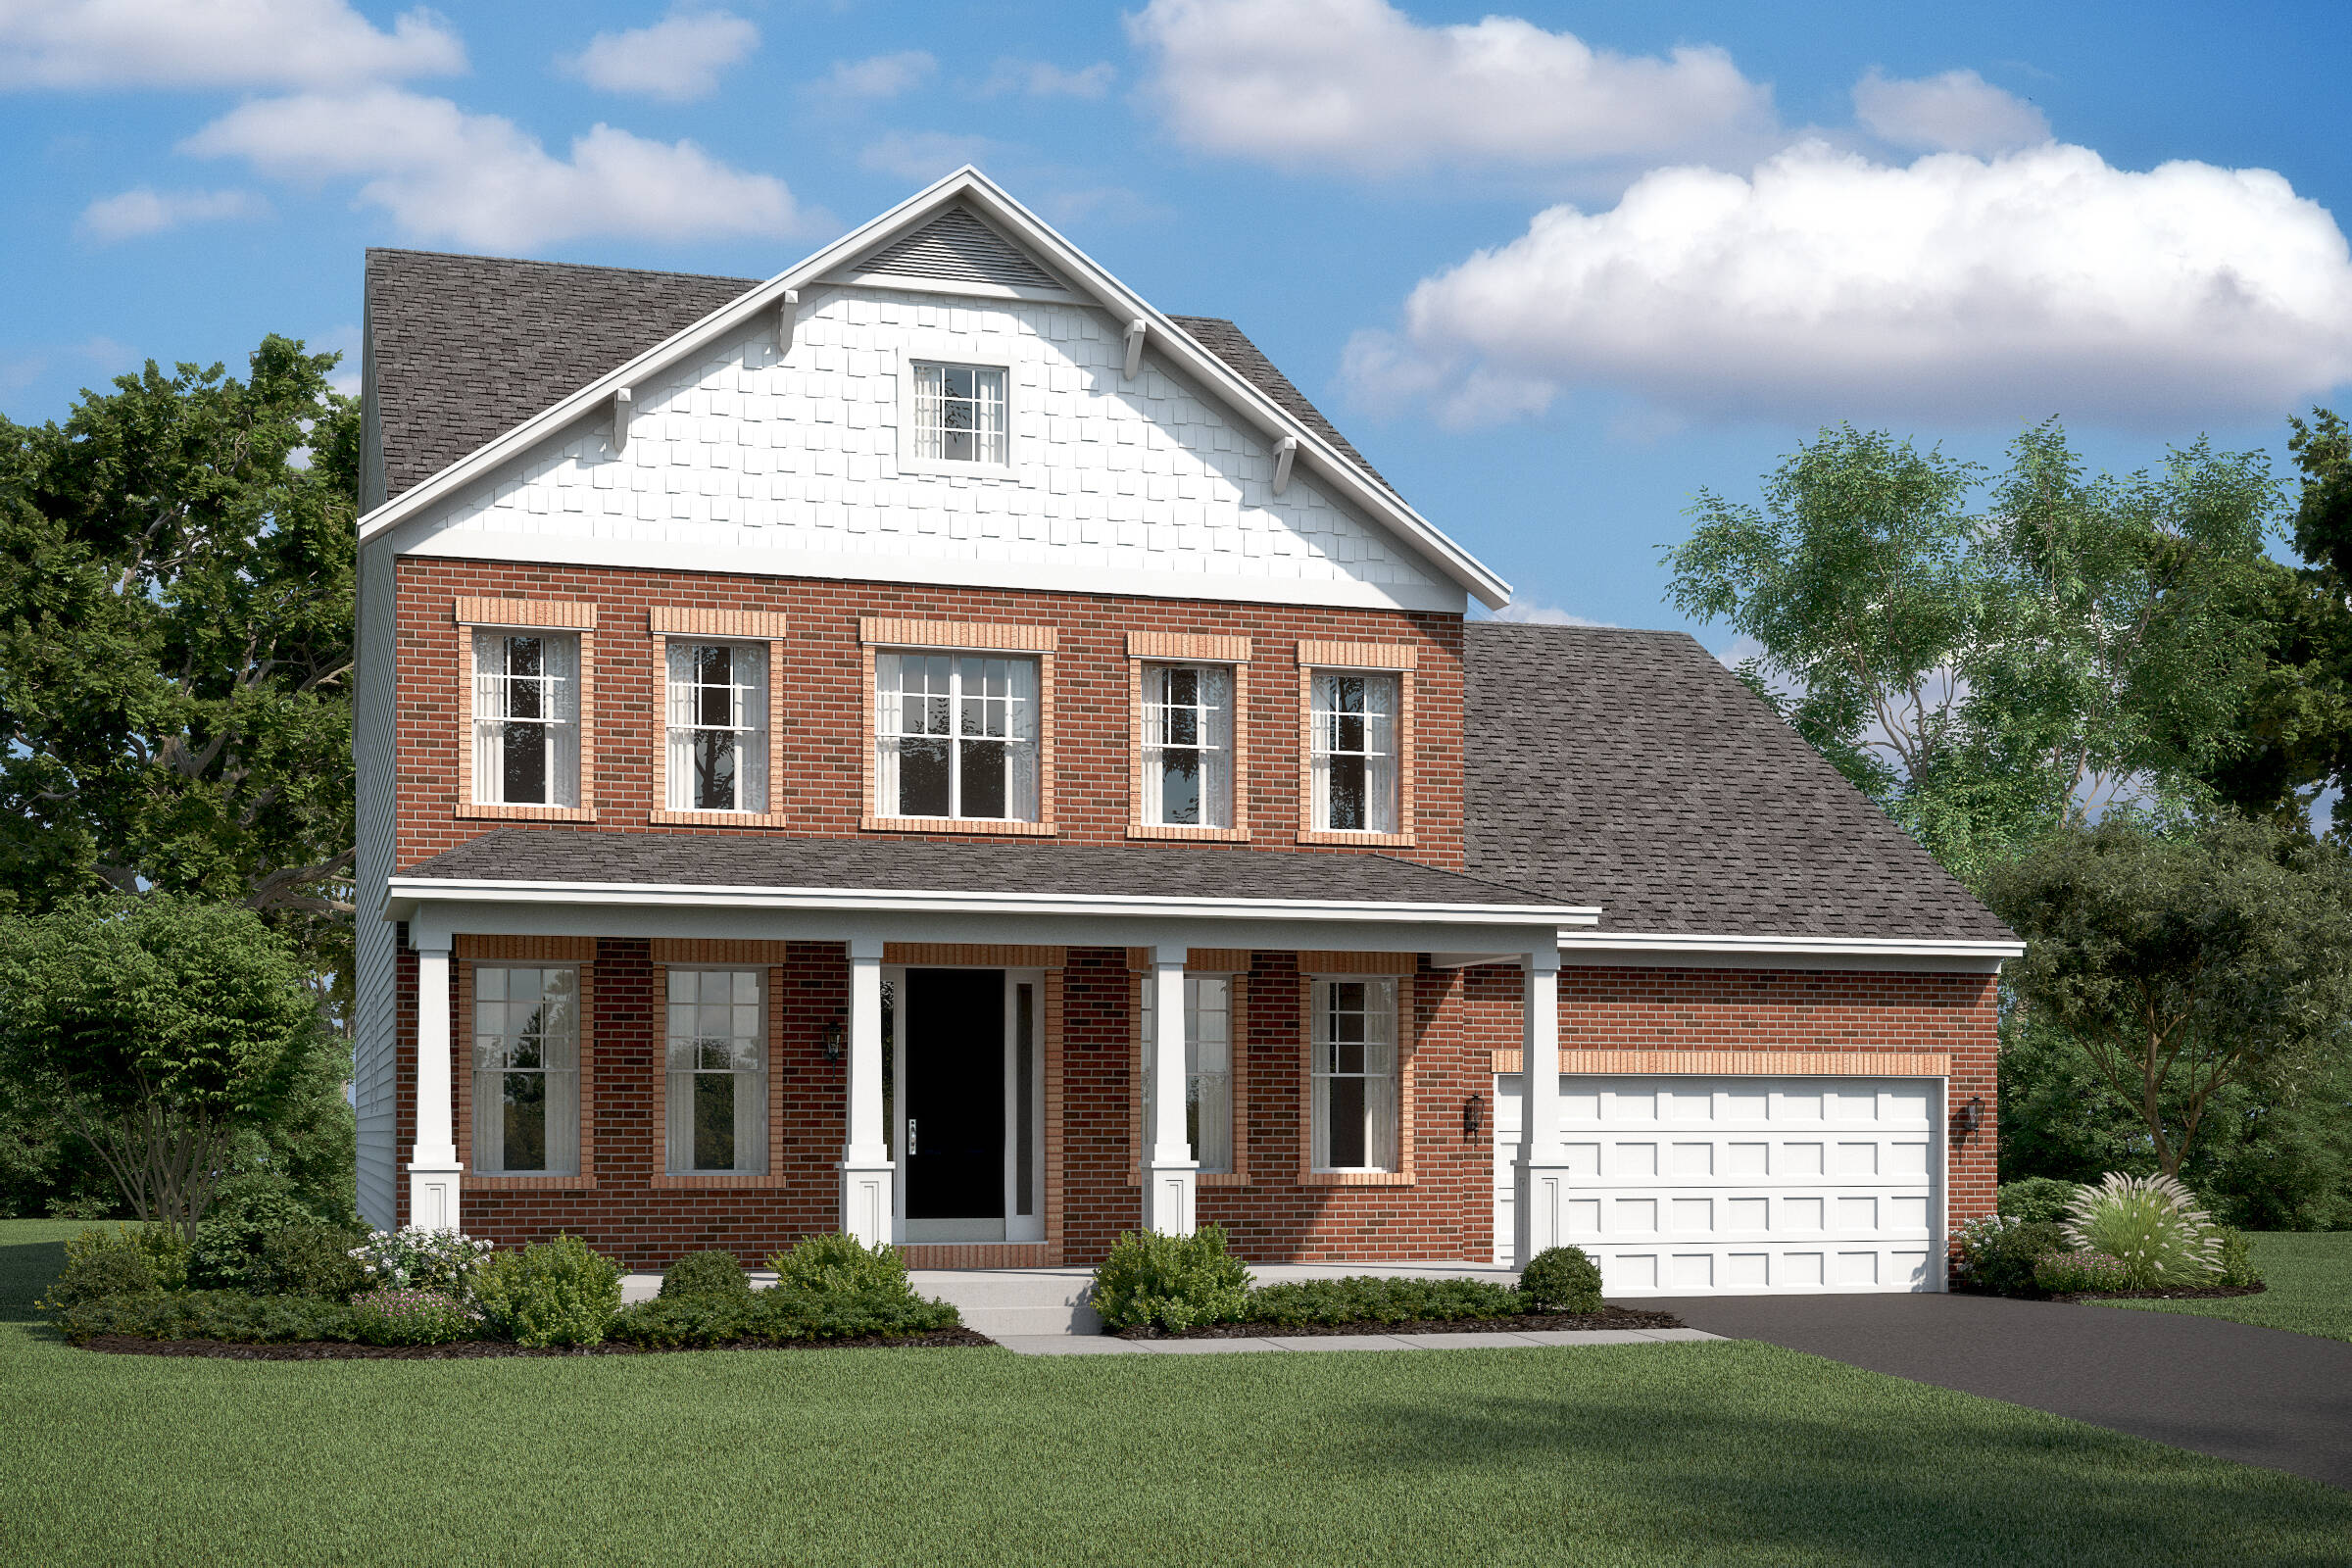 oxnard II db new homes at burke junction in virginia